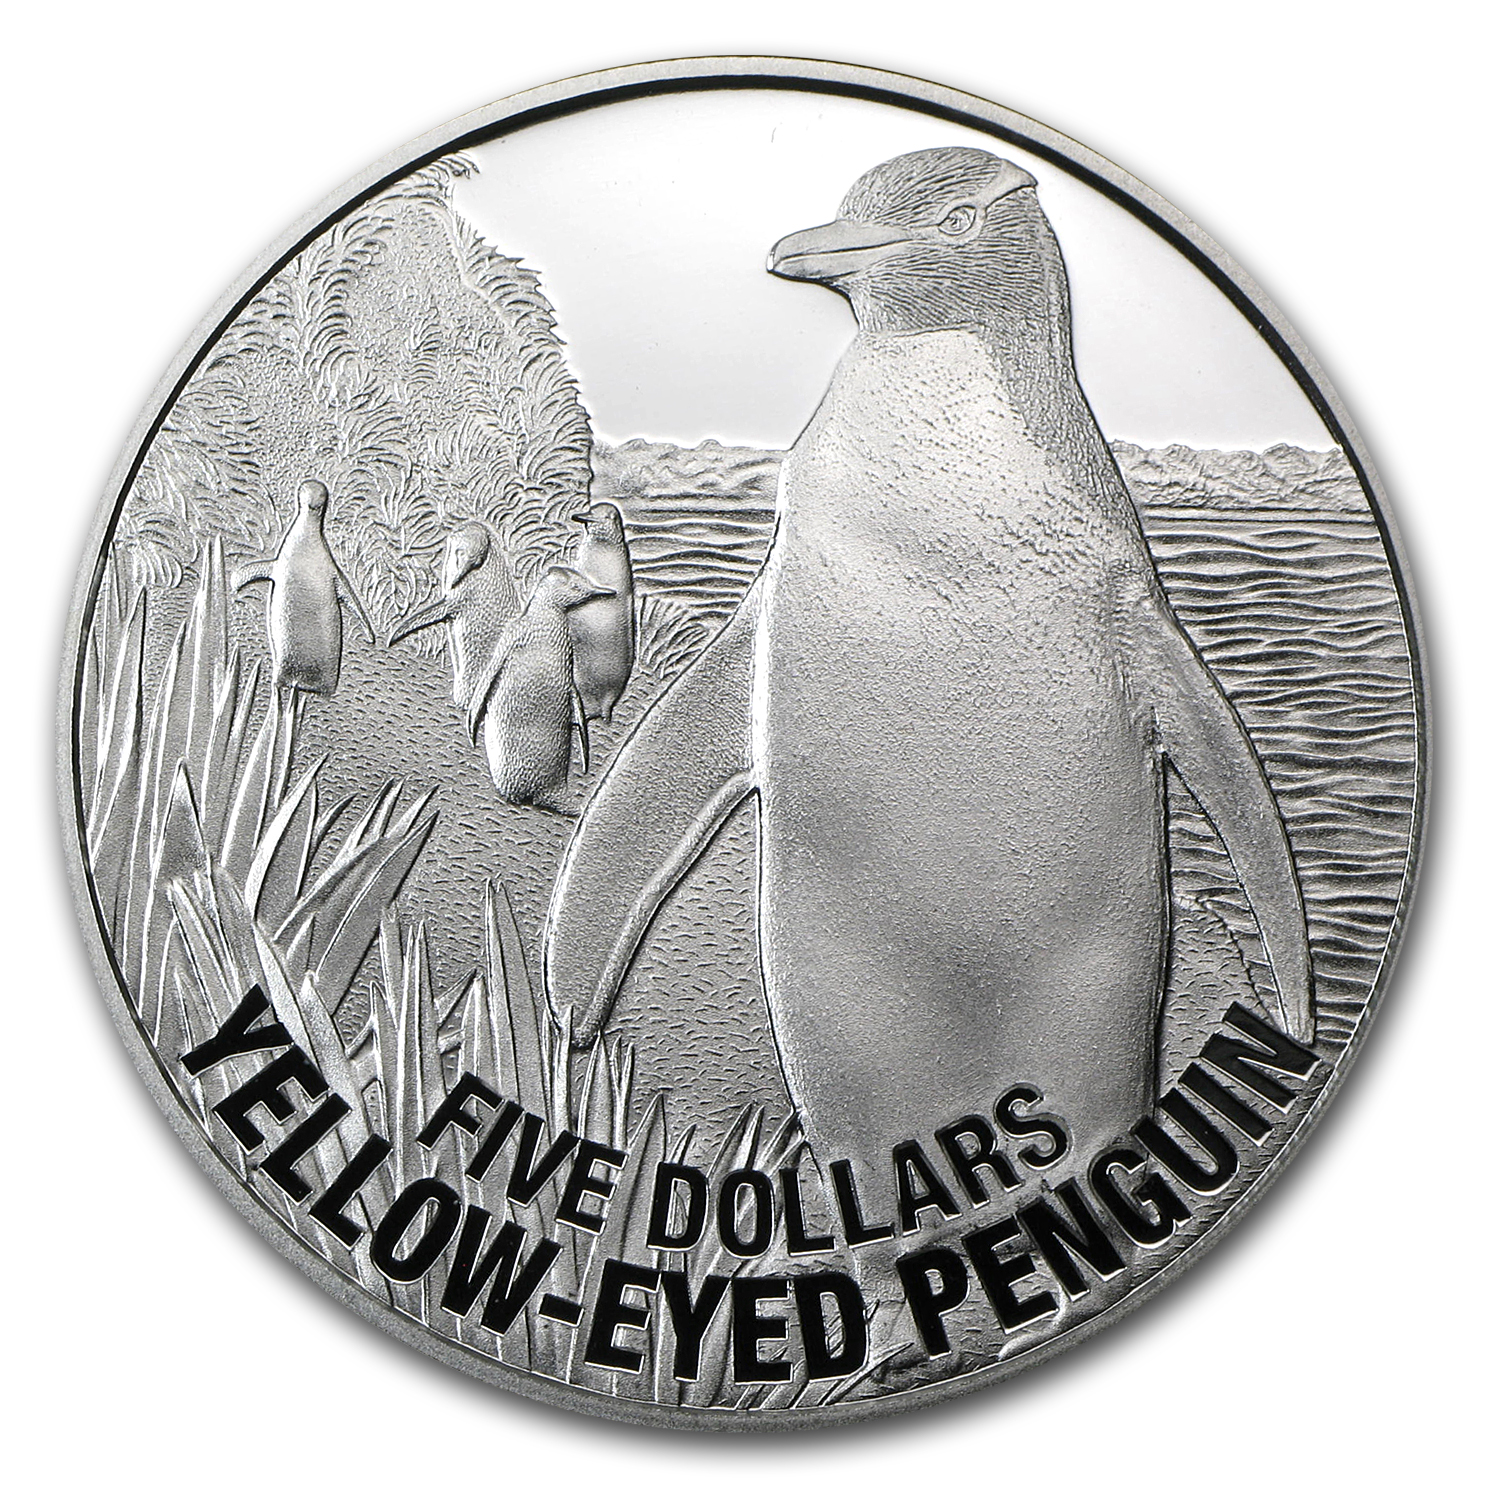 2011 New Zealand 1 oz Silver $5 Yellow Eyed Penguin (Proof)